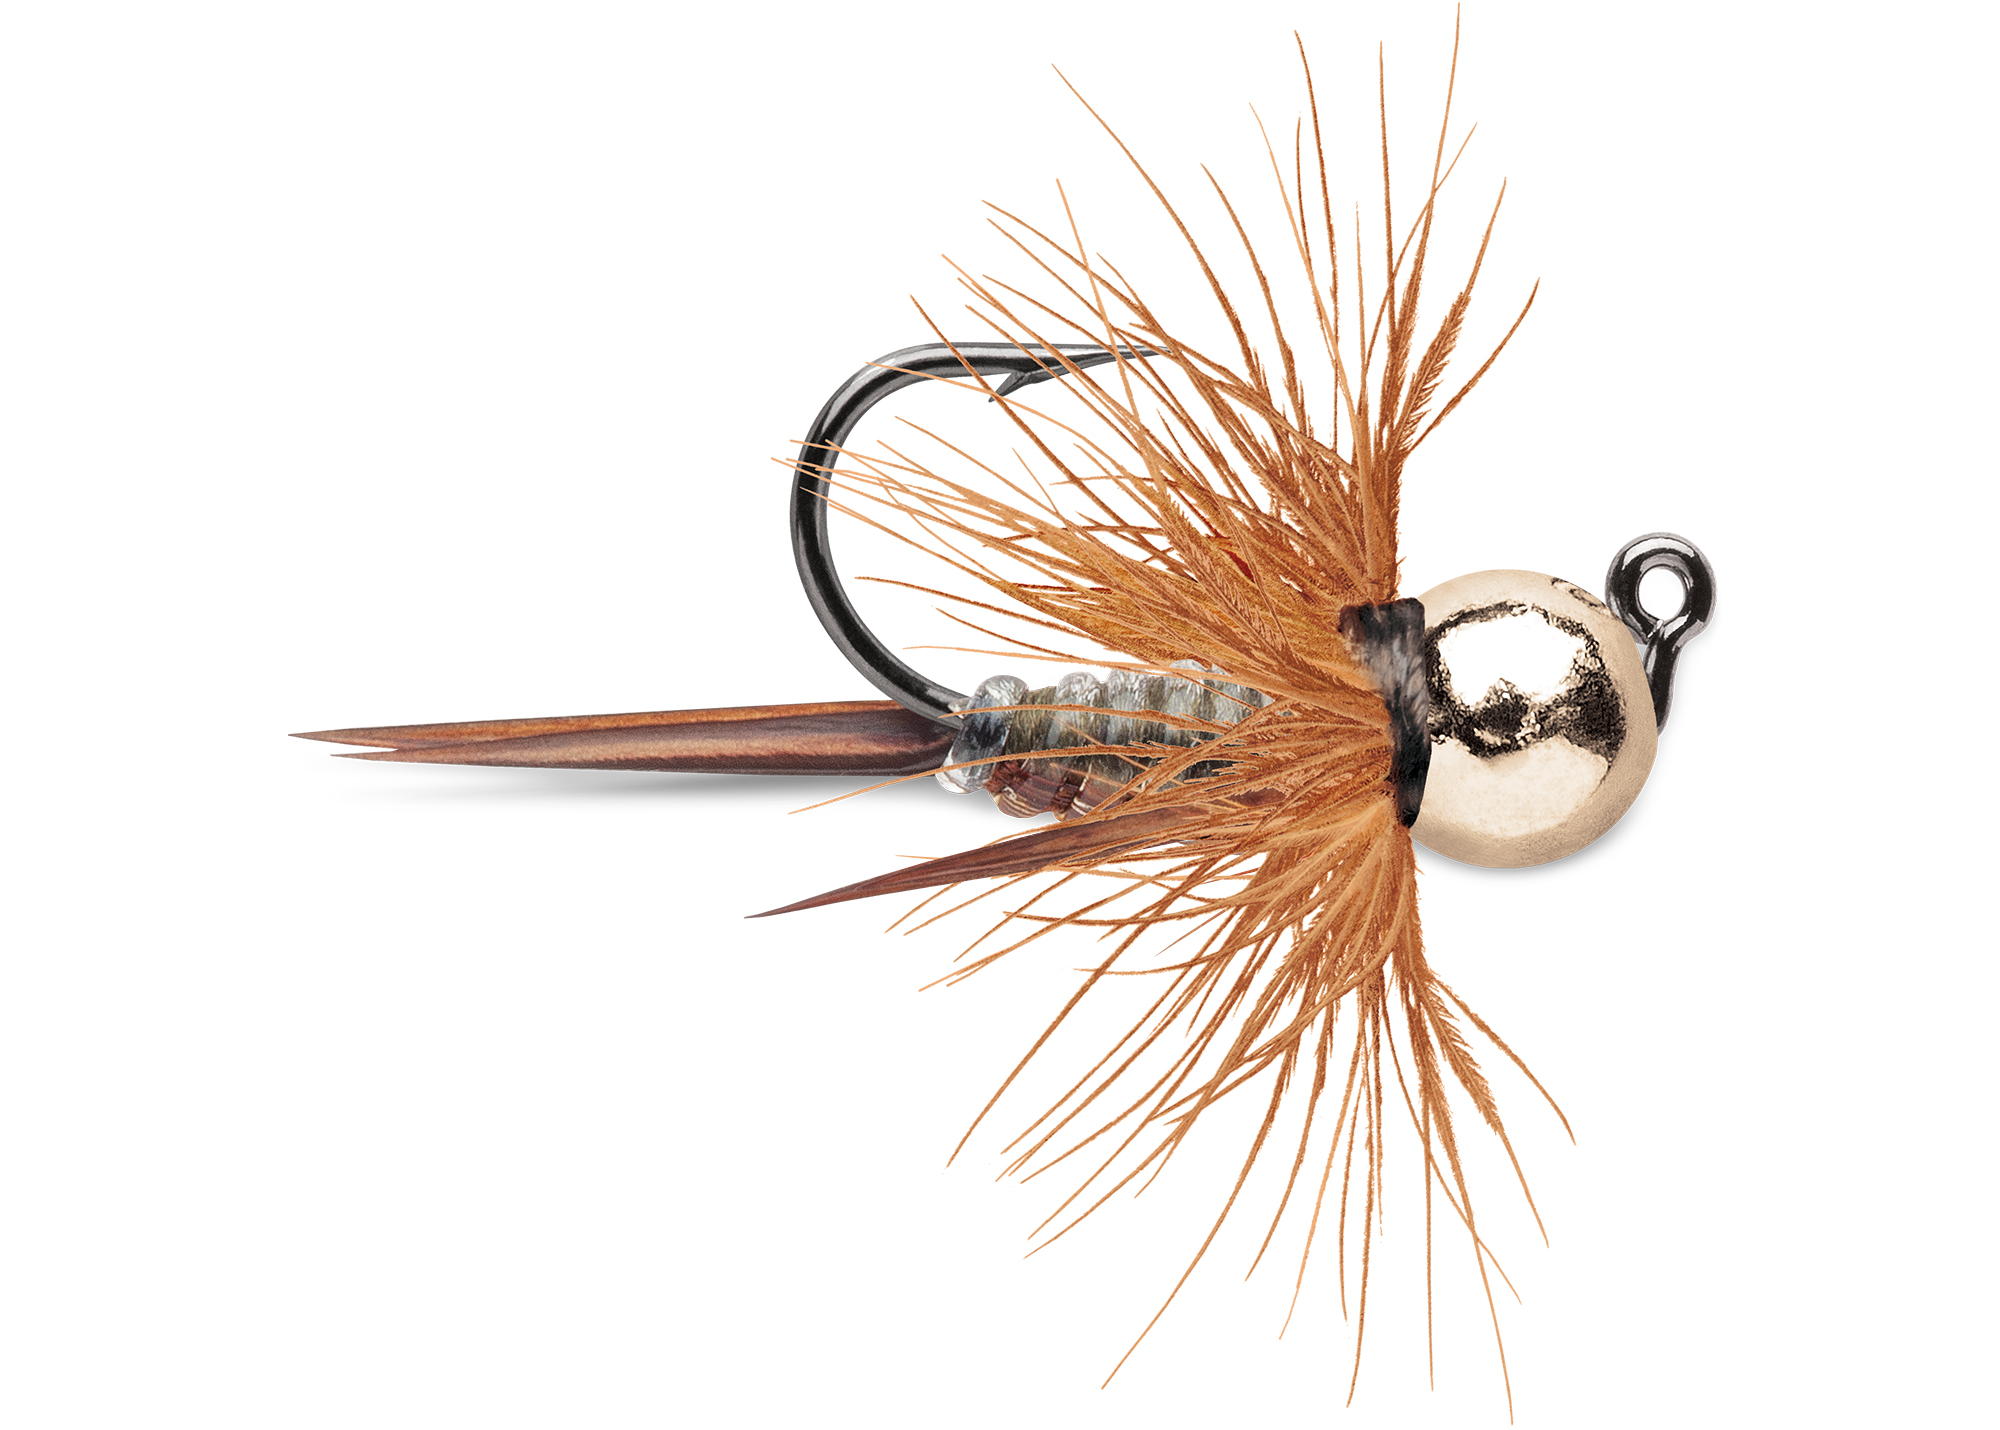 Details about  /VMC TLBJ Tungsten Luv Bug Jig 1//32 Size 10 2 per pack Ultra Glow TLBJ132